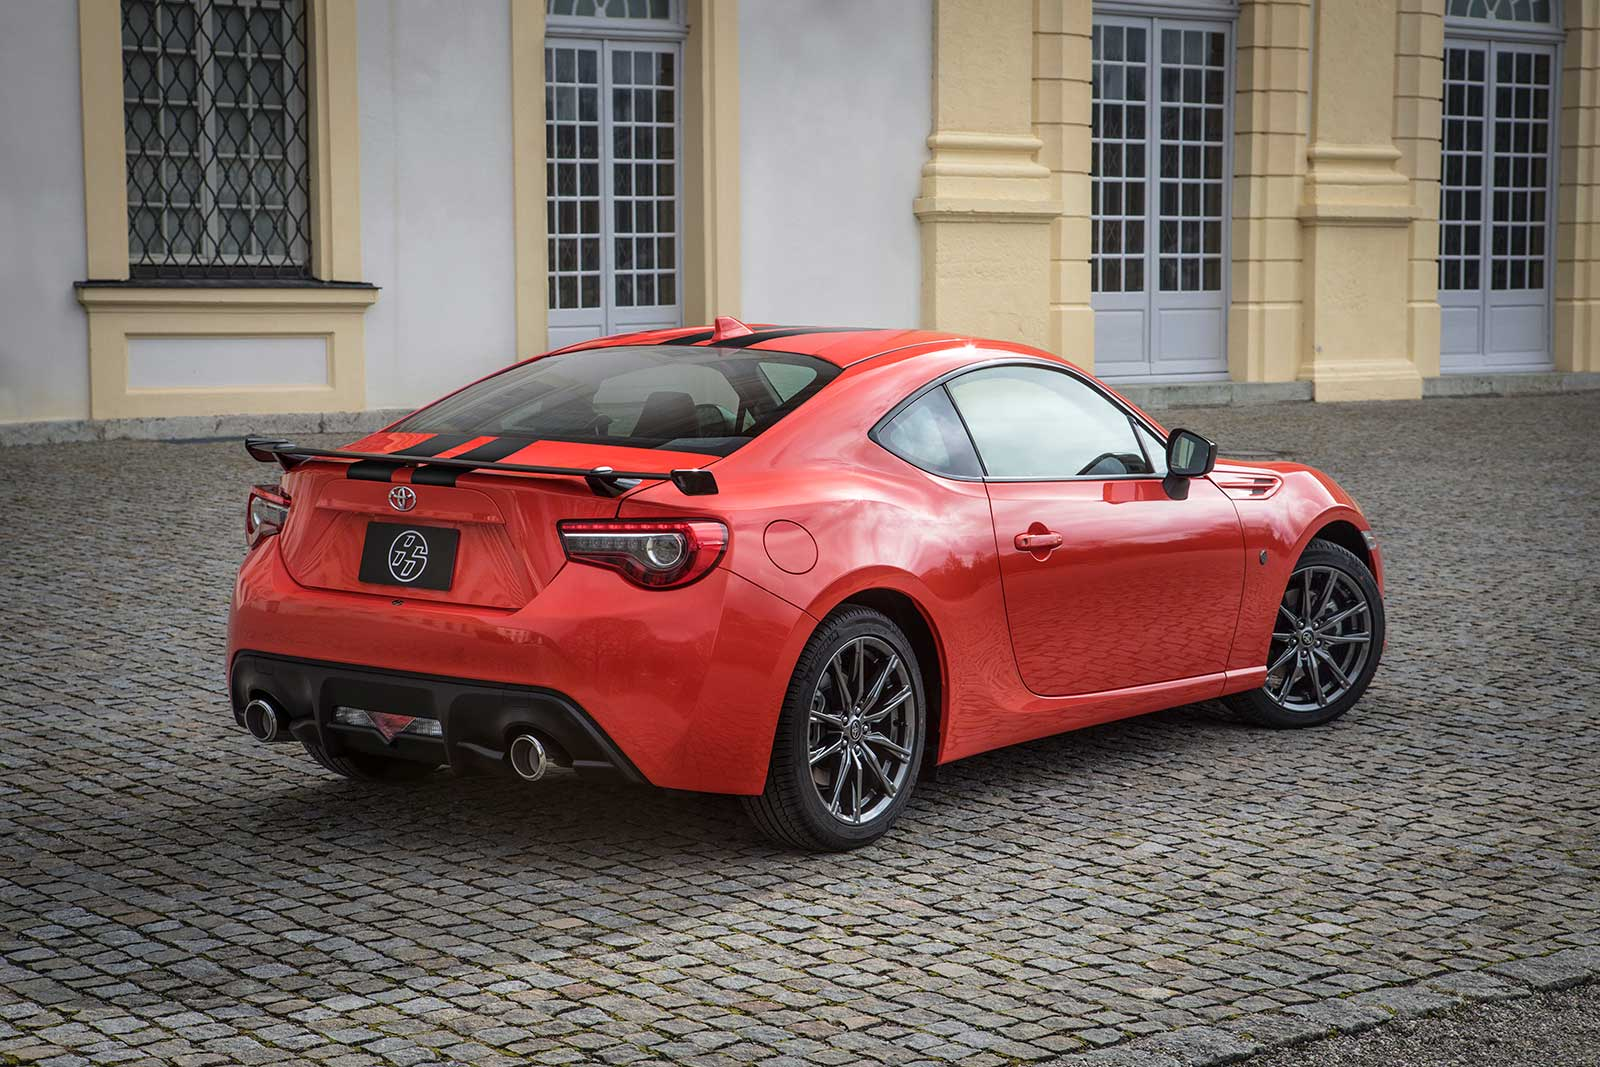 2018 toyota 86 adds comfort focused gt trim level autoevolution. Black Bedroom Furniture Sets. Home Design Ideas